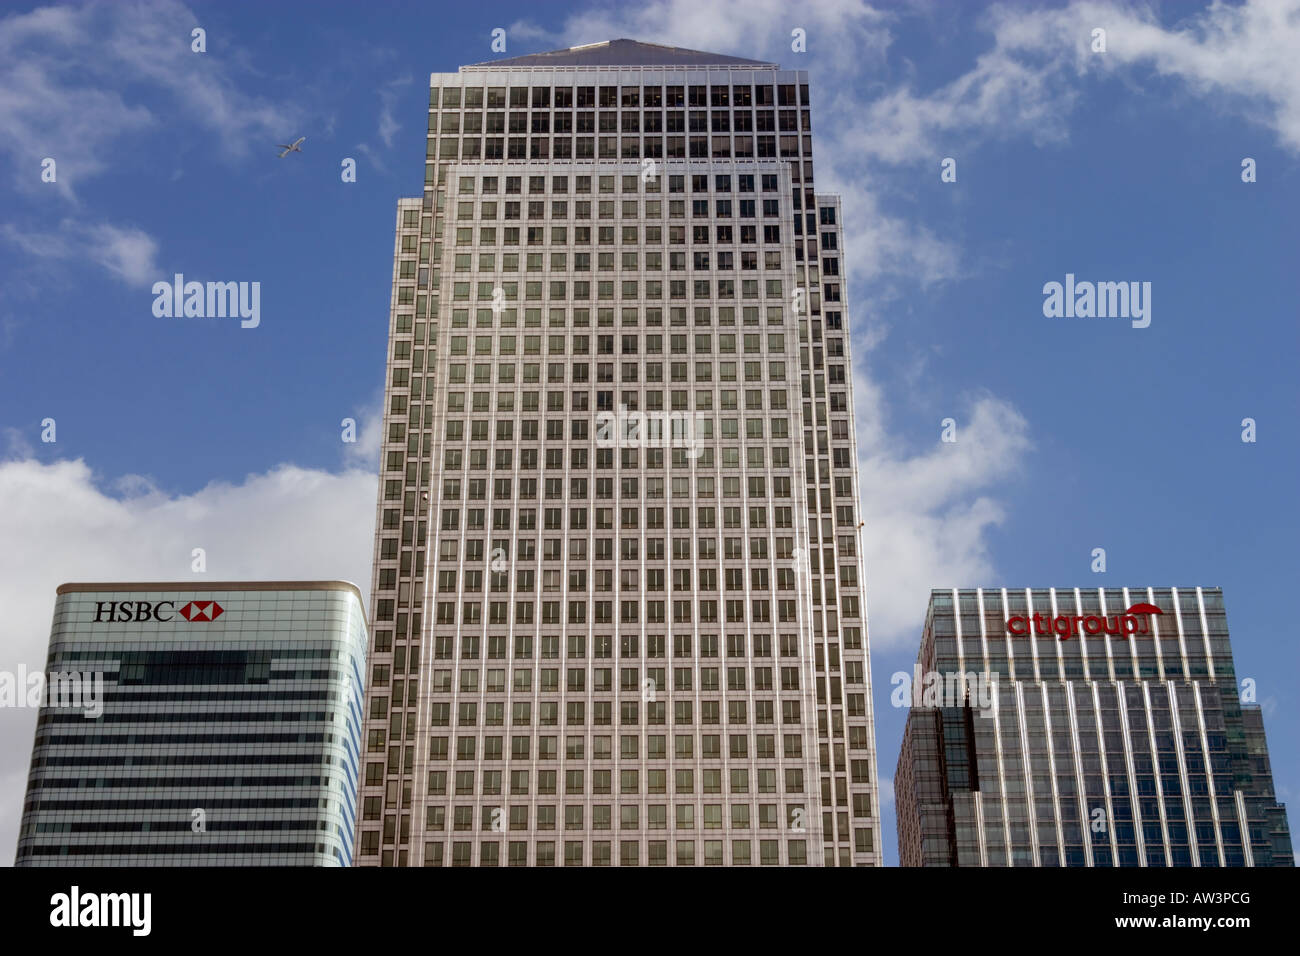 One Canada Square,HSBC and Citigroup Buildings, Canary Wharf, London - Stock Image